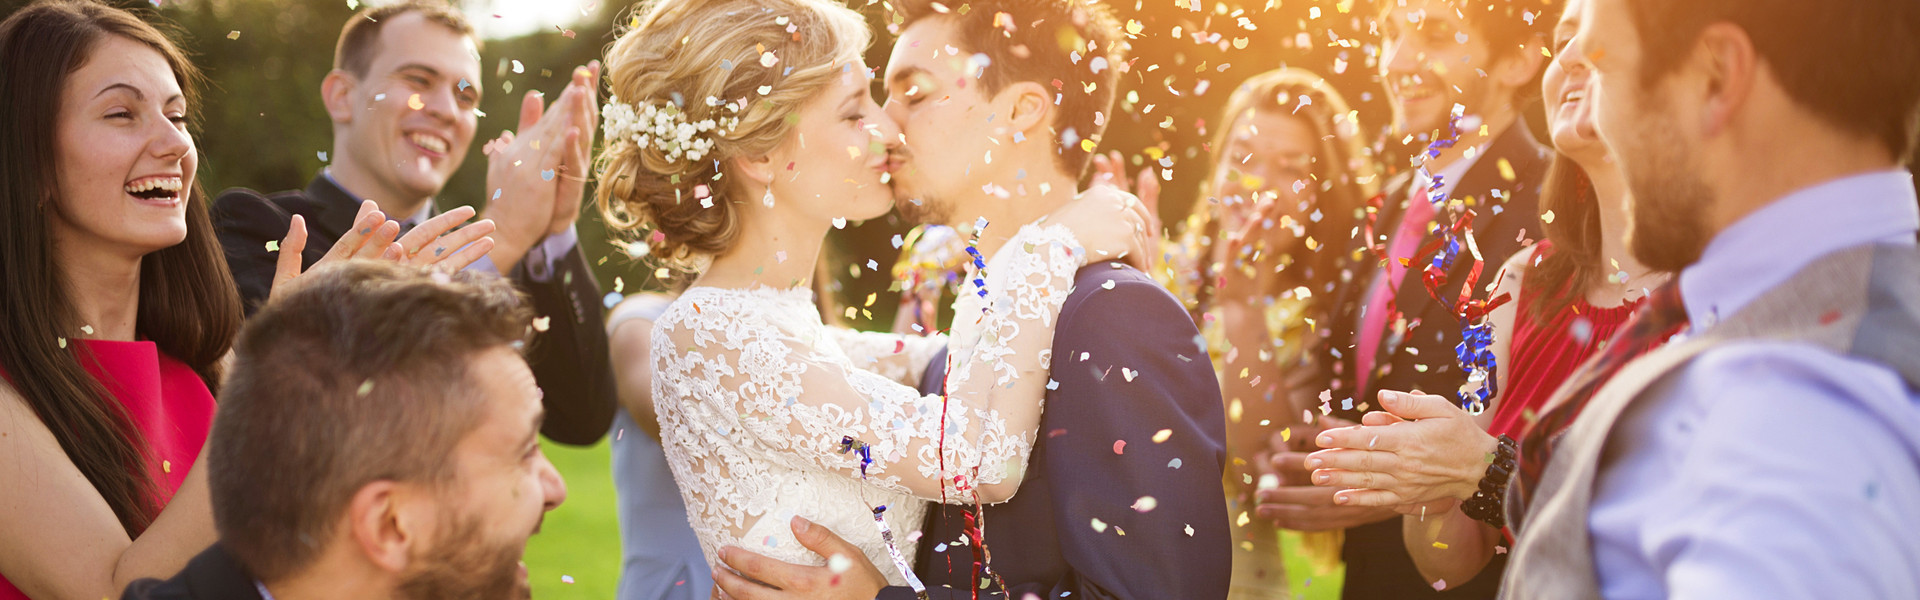 An All-Inclusive Wedding Reception Package in Orlando, FL